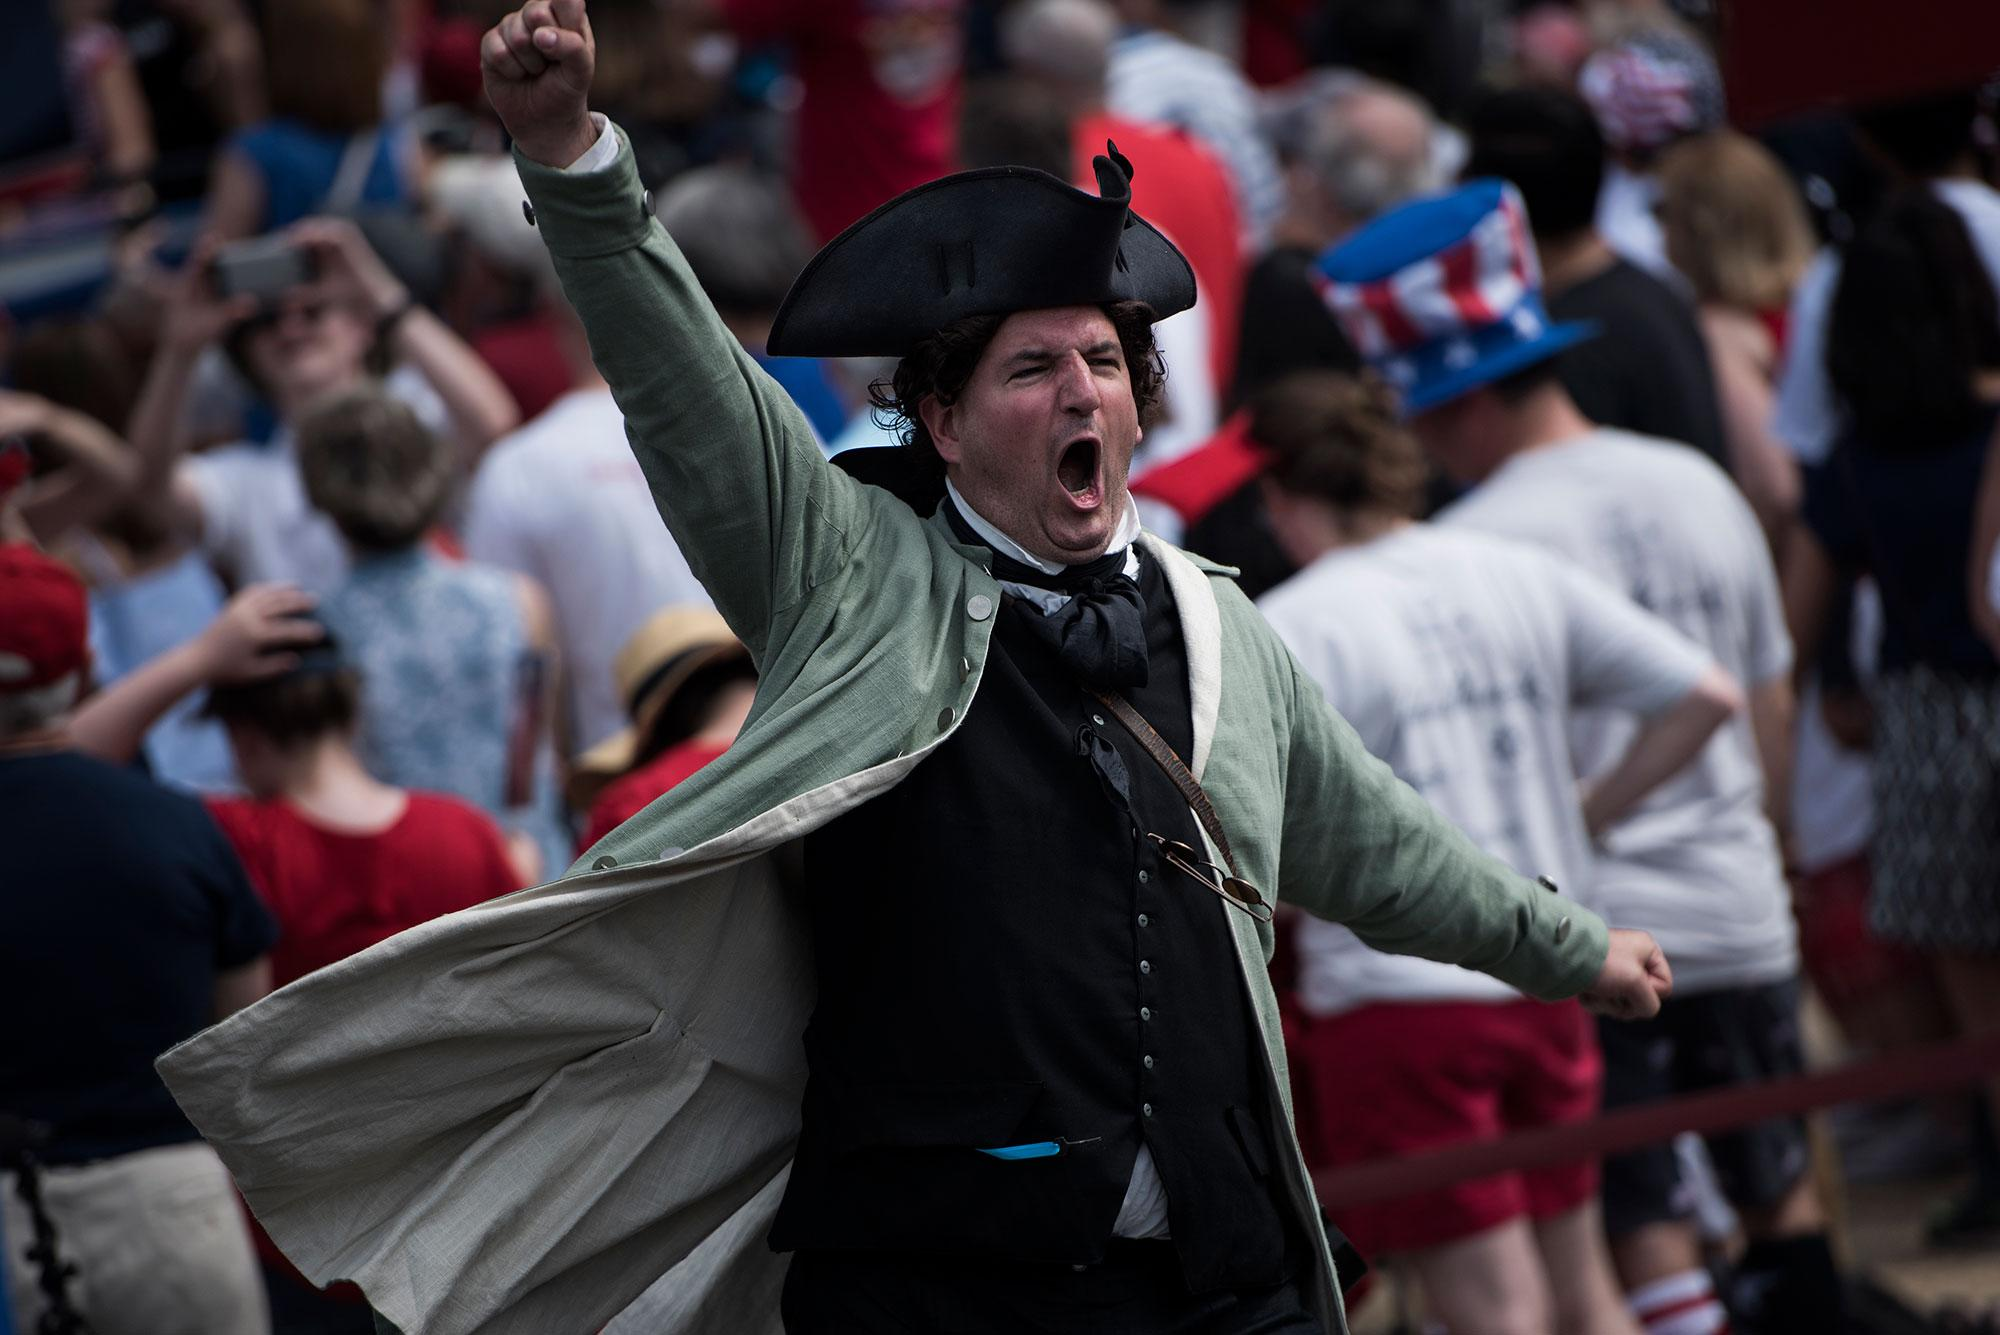 <p>A costumed man cheers during a show outside the National Archives to celebrate Independence Day on July 4, 2017 in Washington, D.C. (Photo: Brendan Smialowski/AFP/Getty Images) </p>